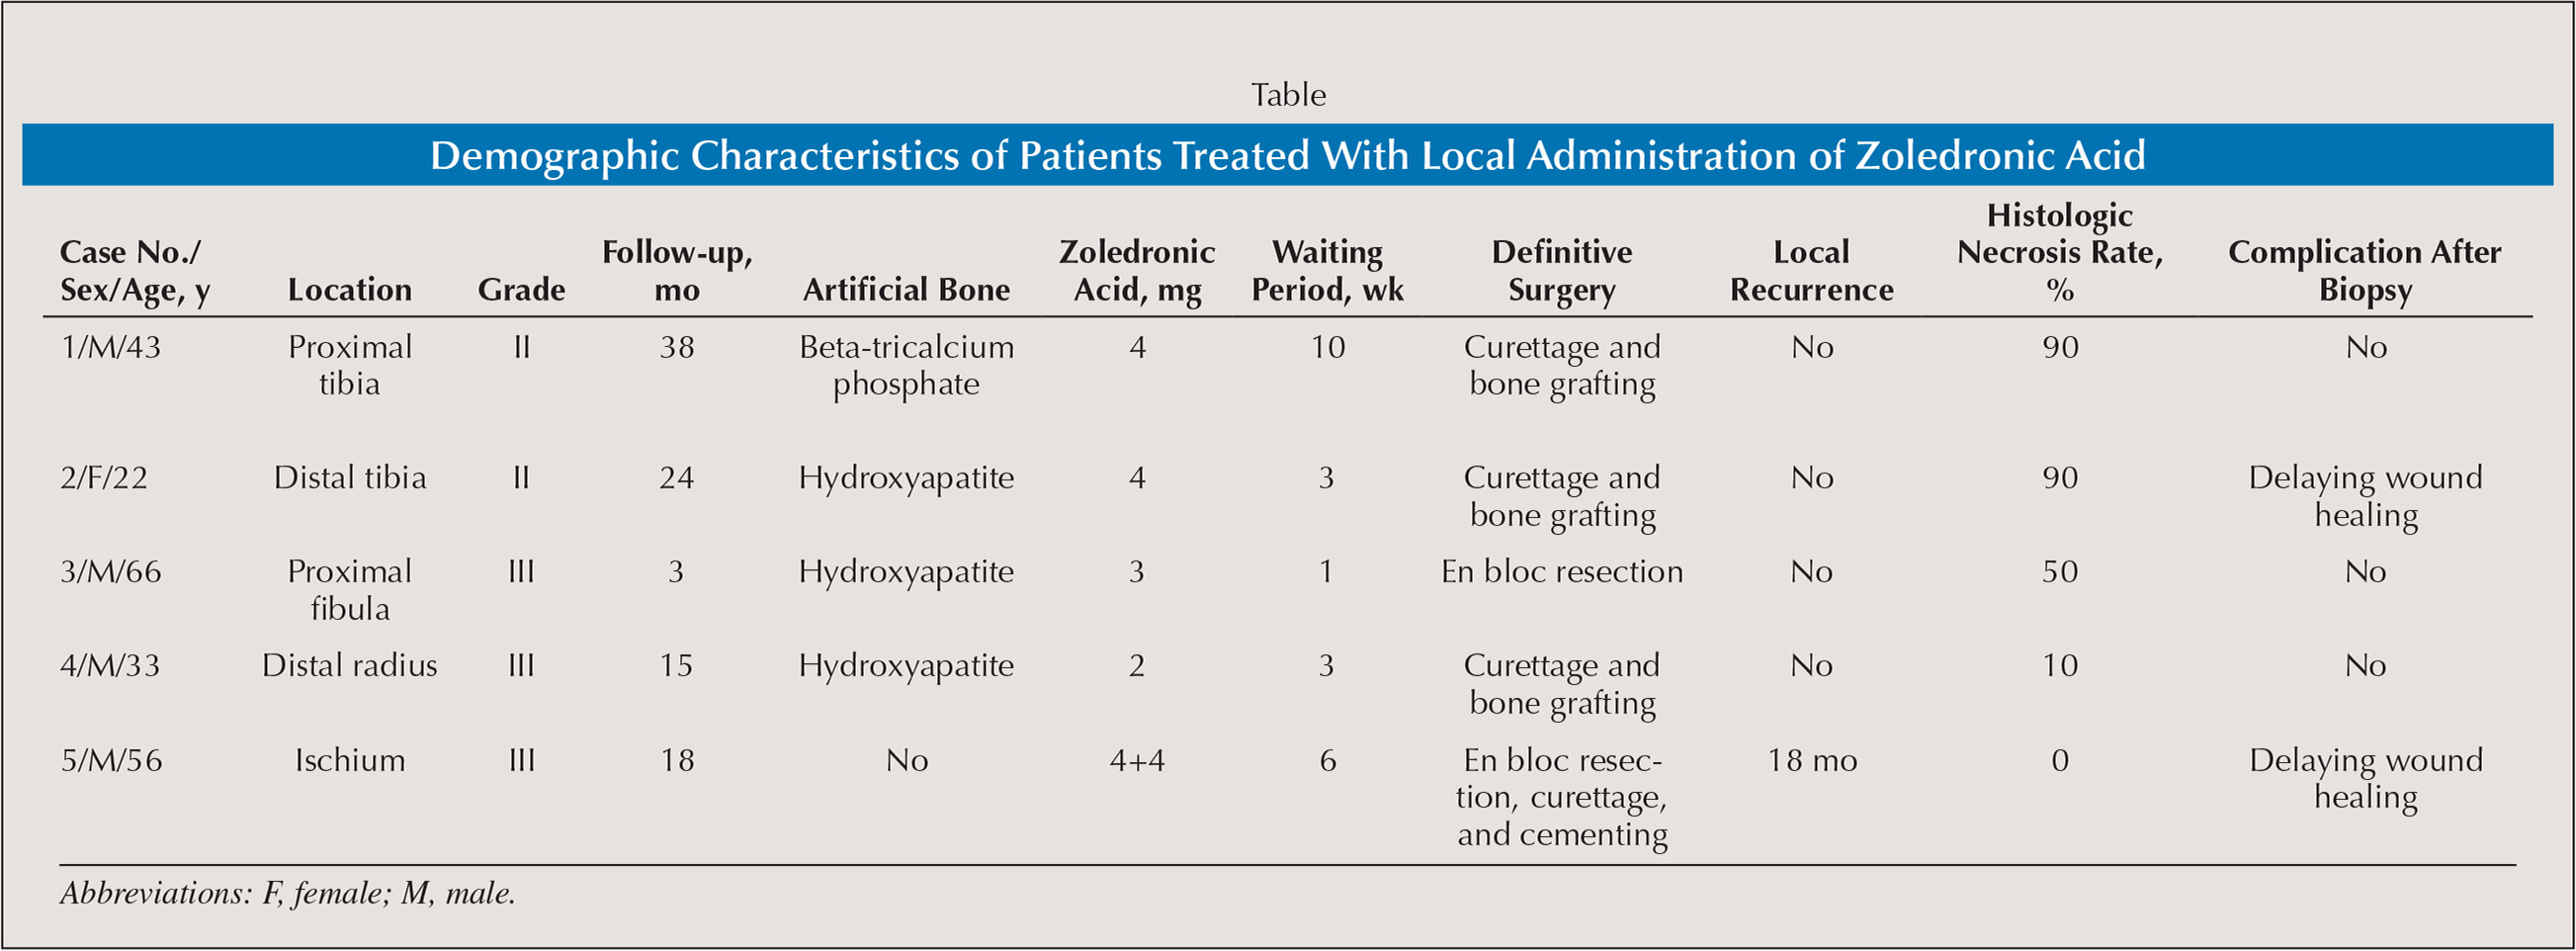 Demographic Characteristics of Patients Treated With Local Administration of Zoledronic Acid